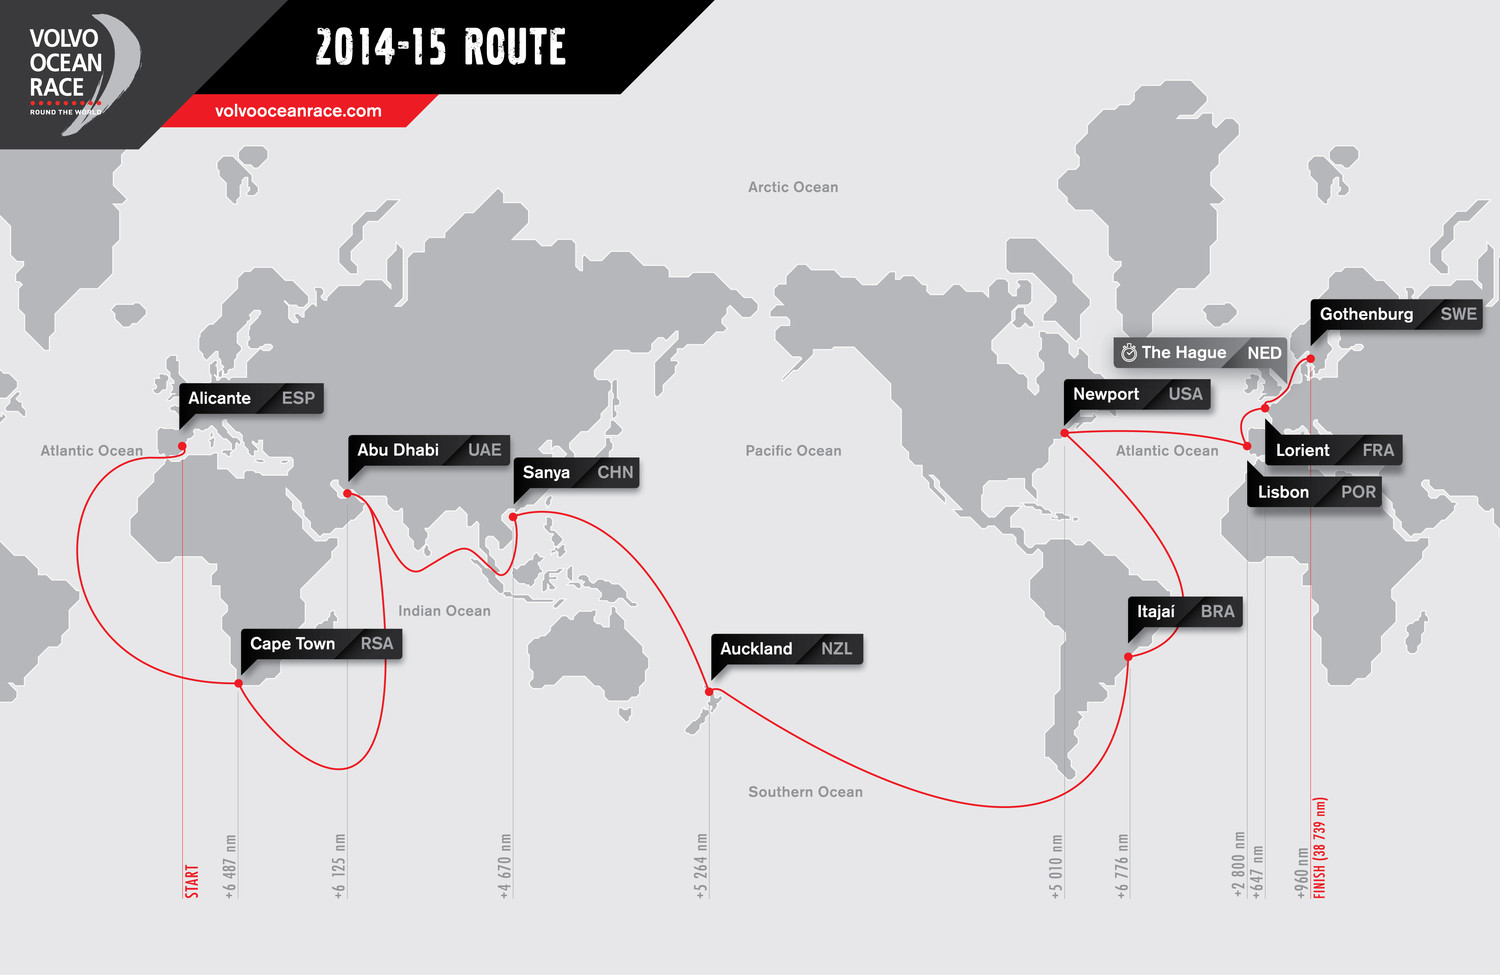 volvo ocean race route 2014-15